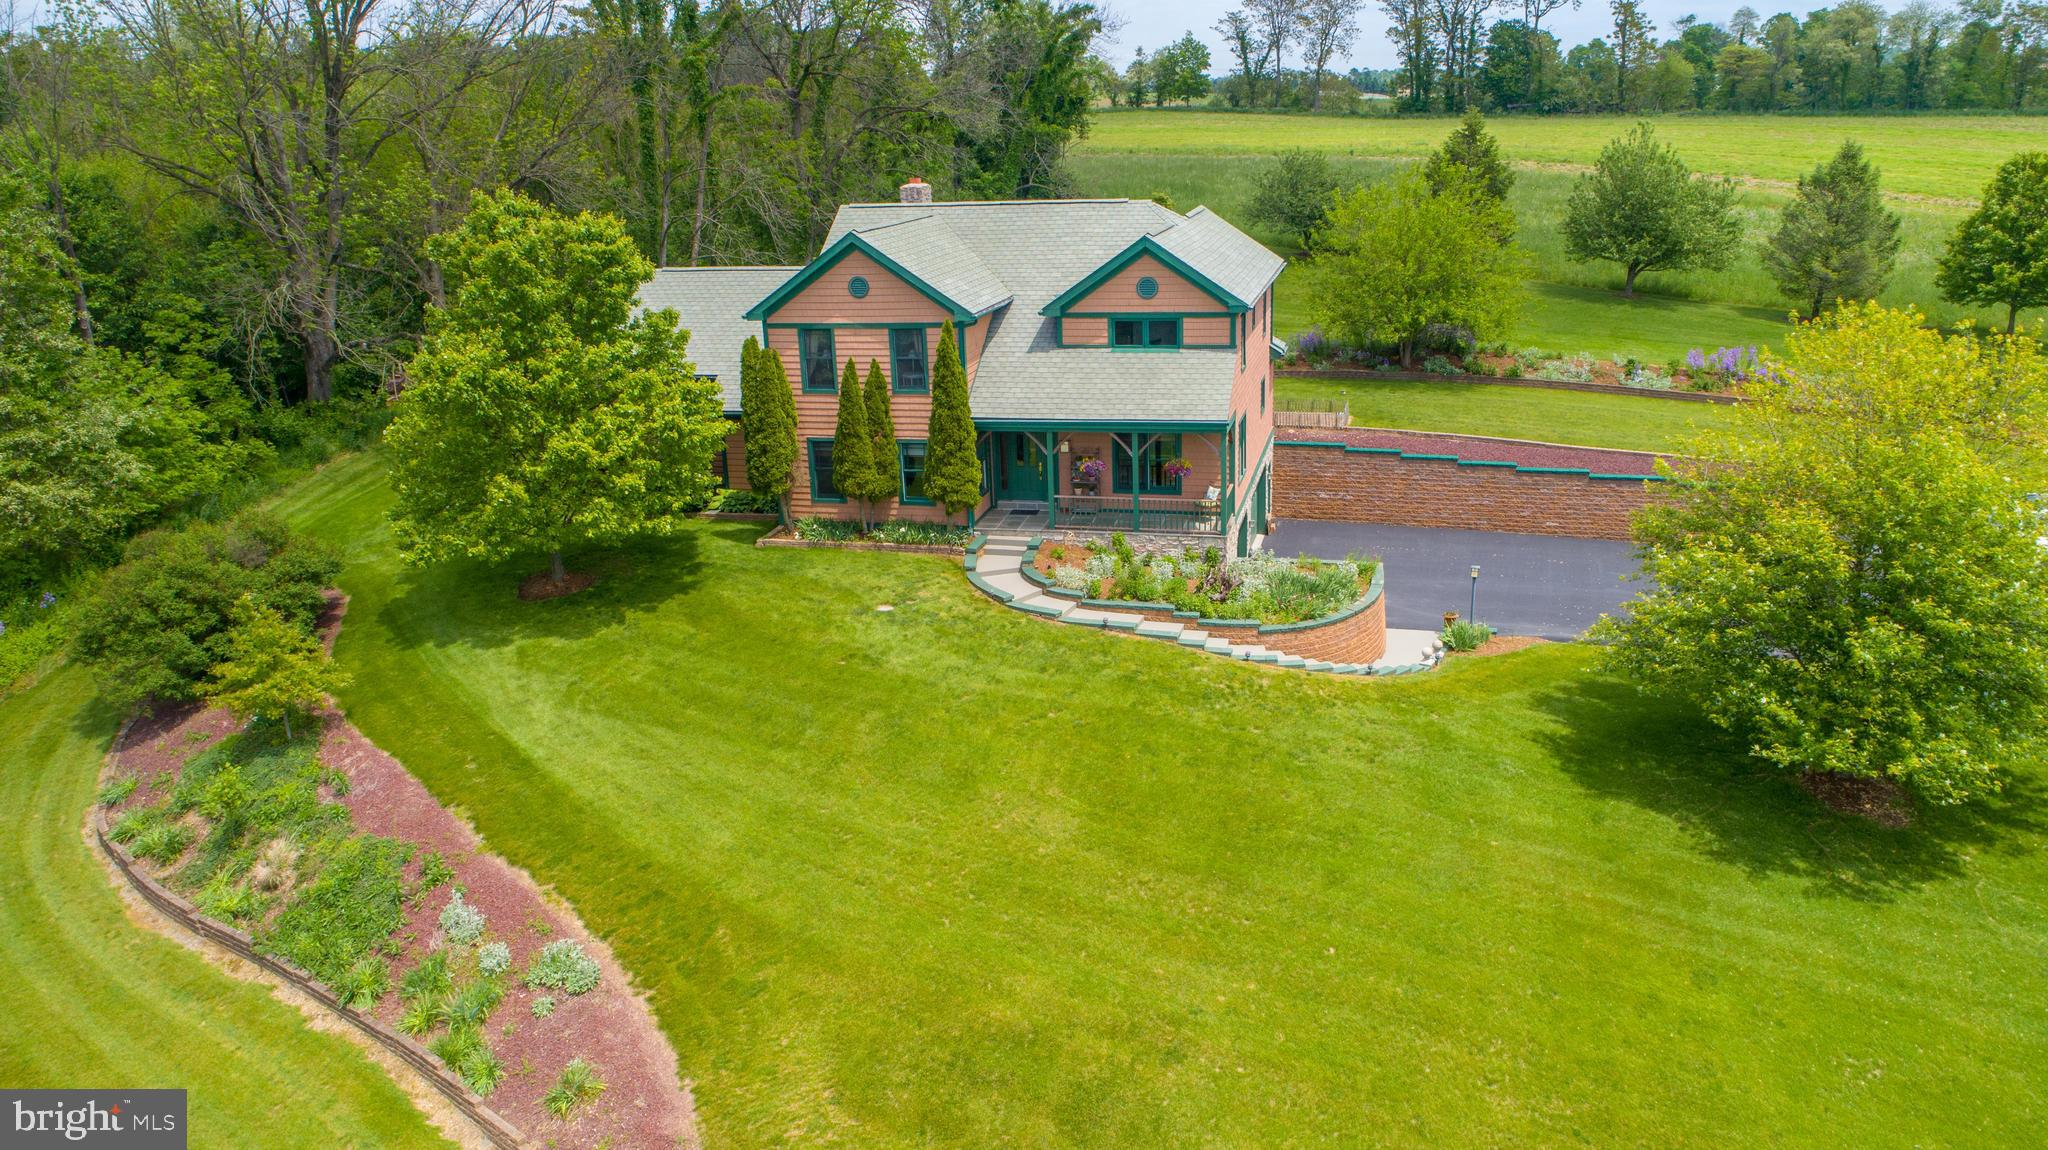 835 WHITE OAK ROAD, MANHEIM, PA 17545